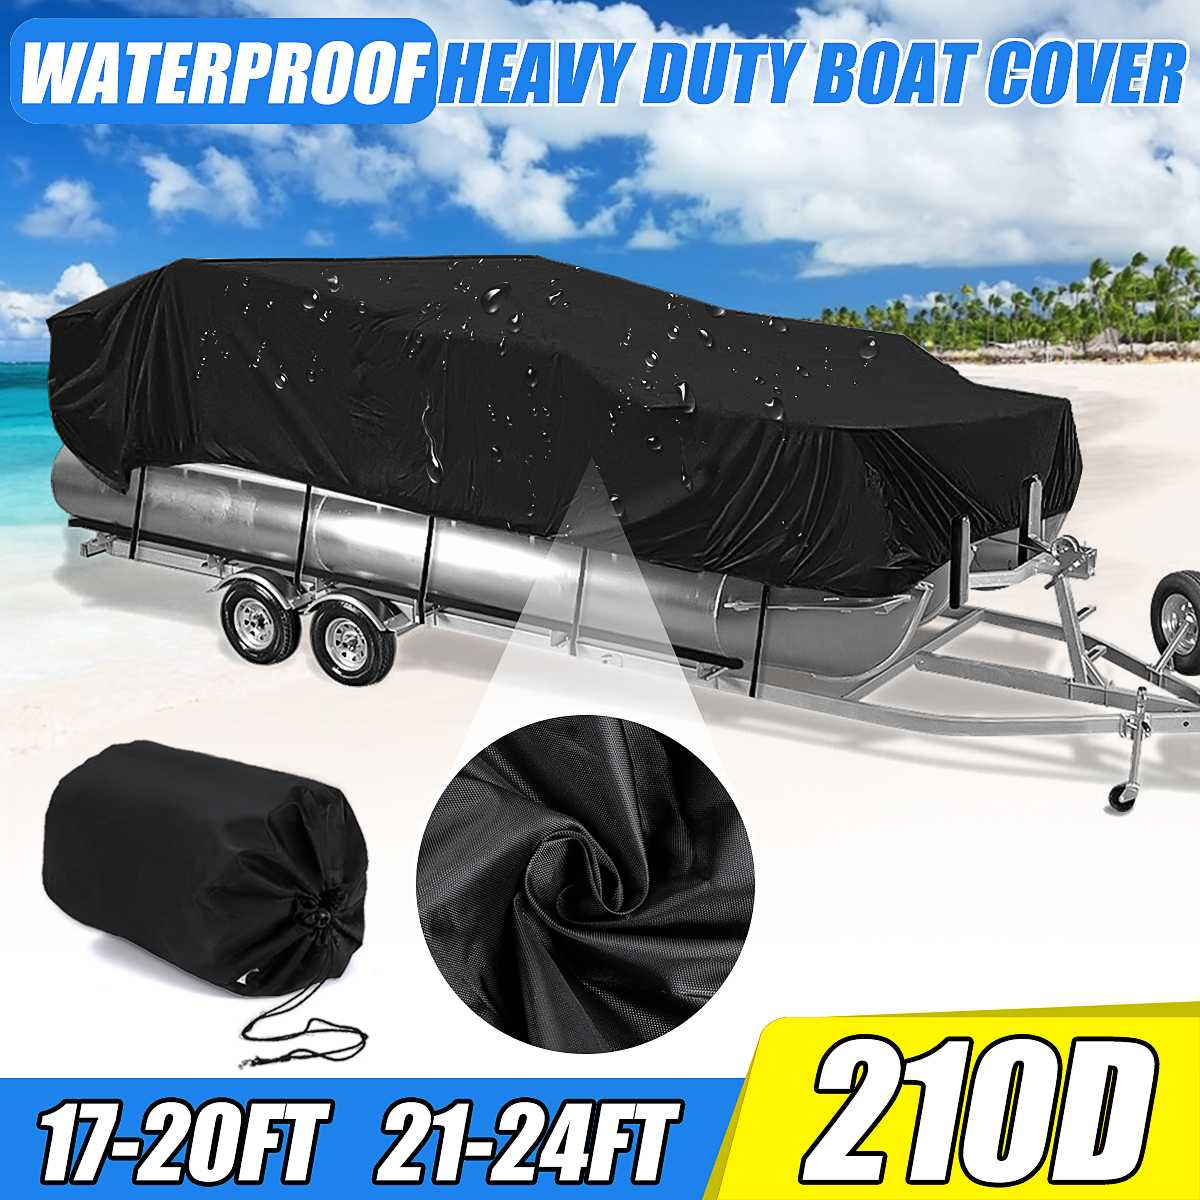 17-20Ft 21-24Ft 210D Heavy Duty Waterproof Boat Cover Fish Ski Beam 96'' Boats Sunproof UV Protector Covers